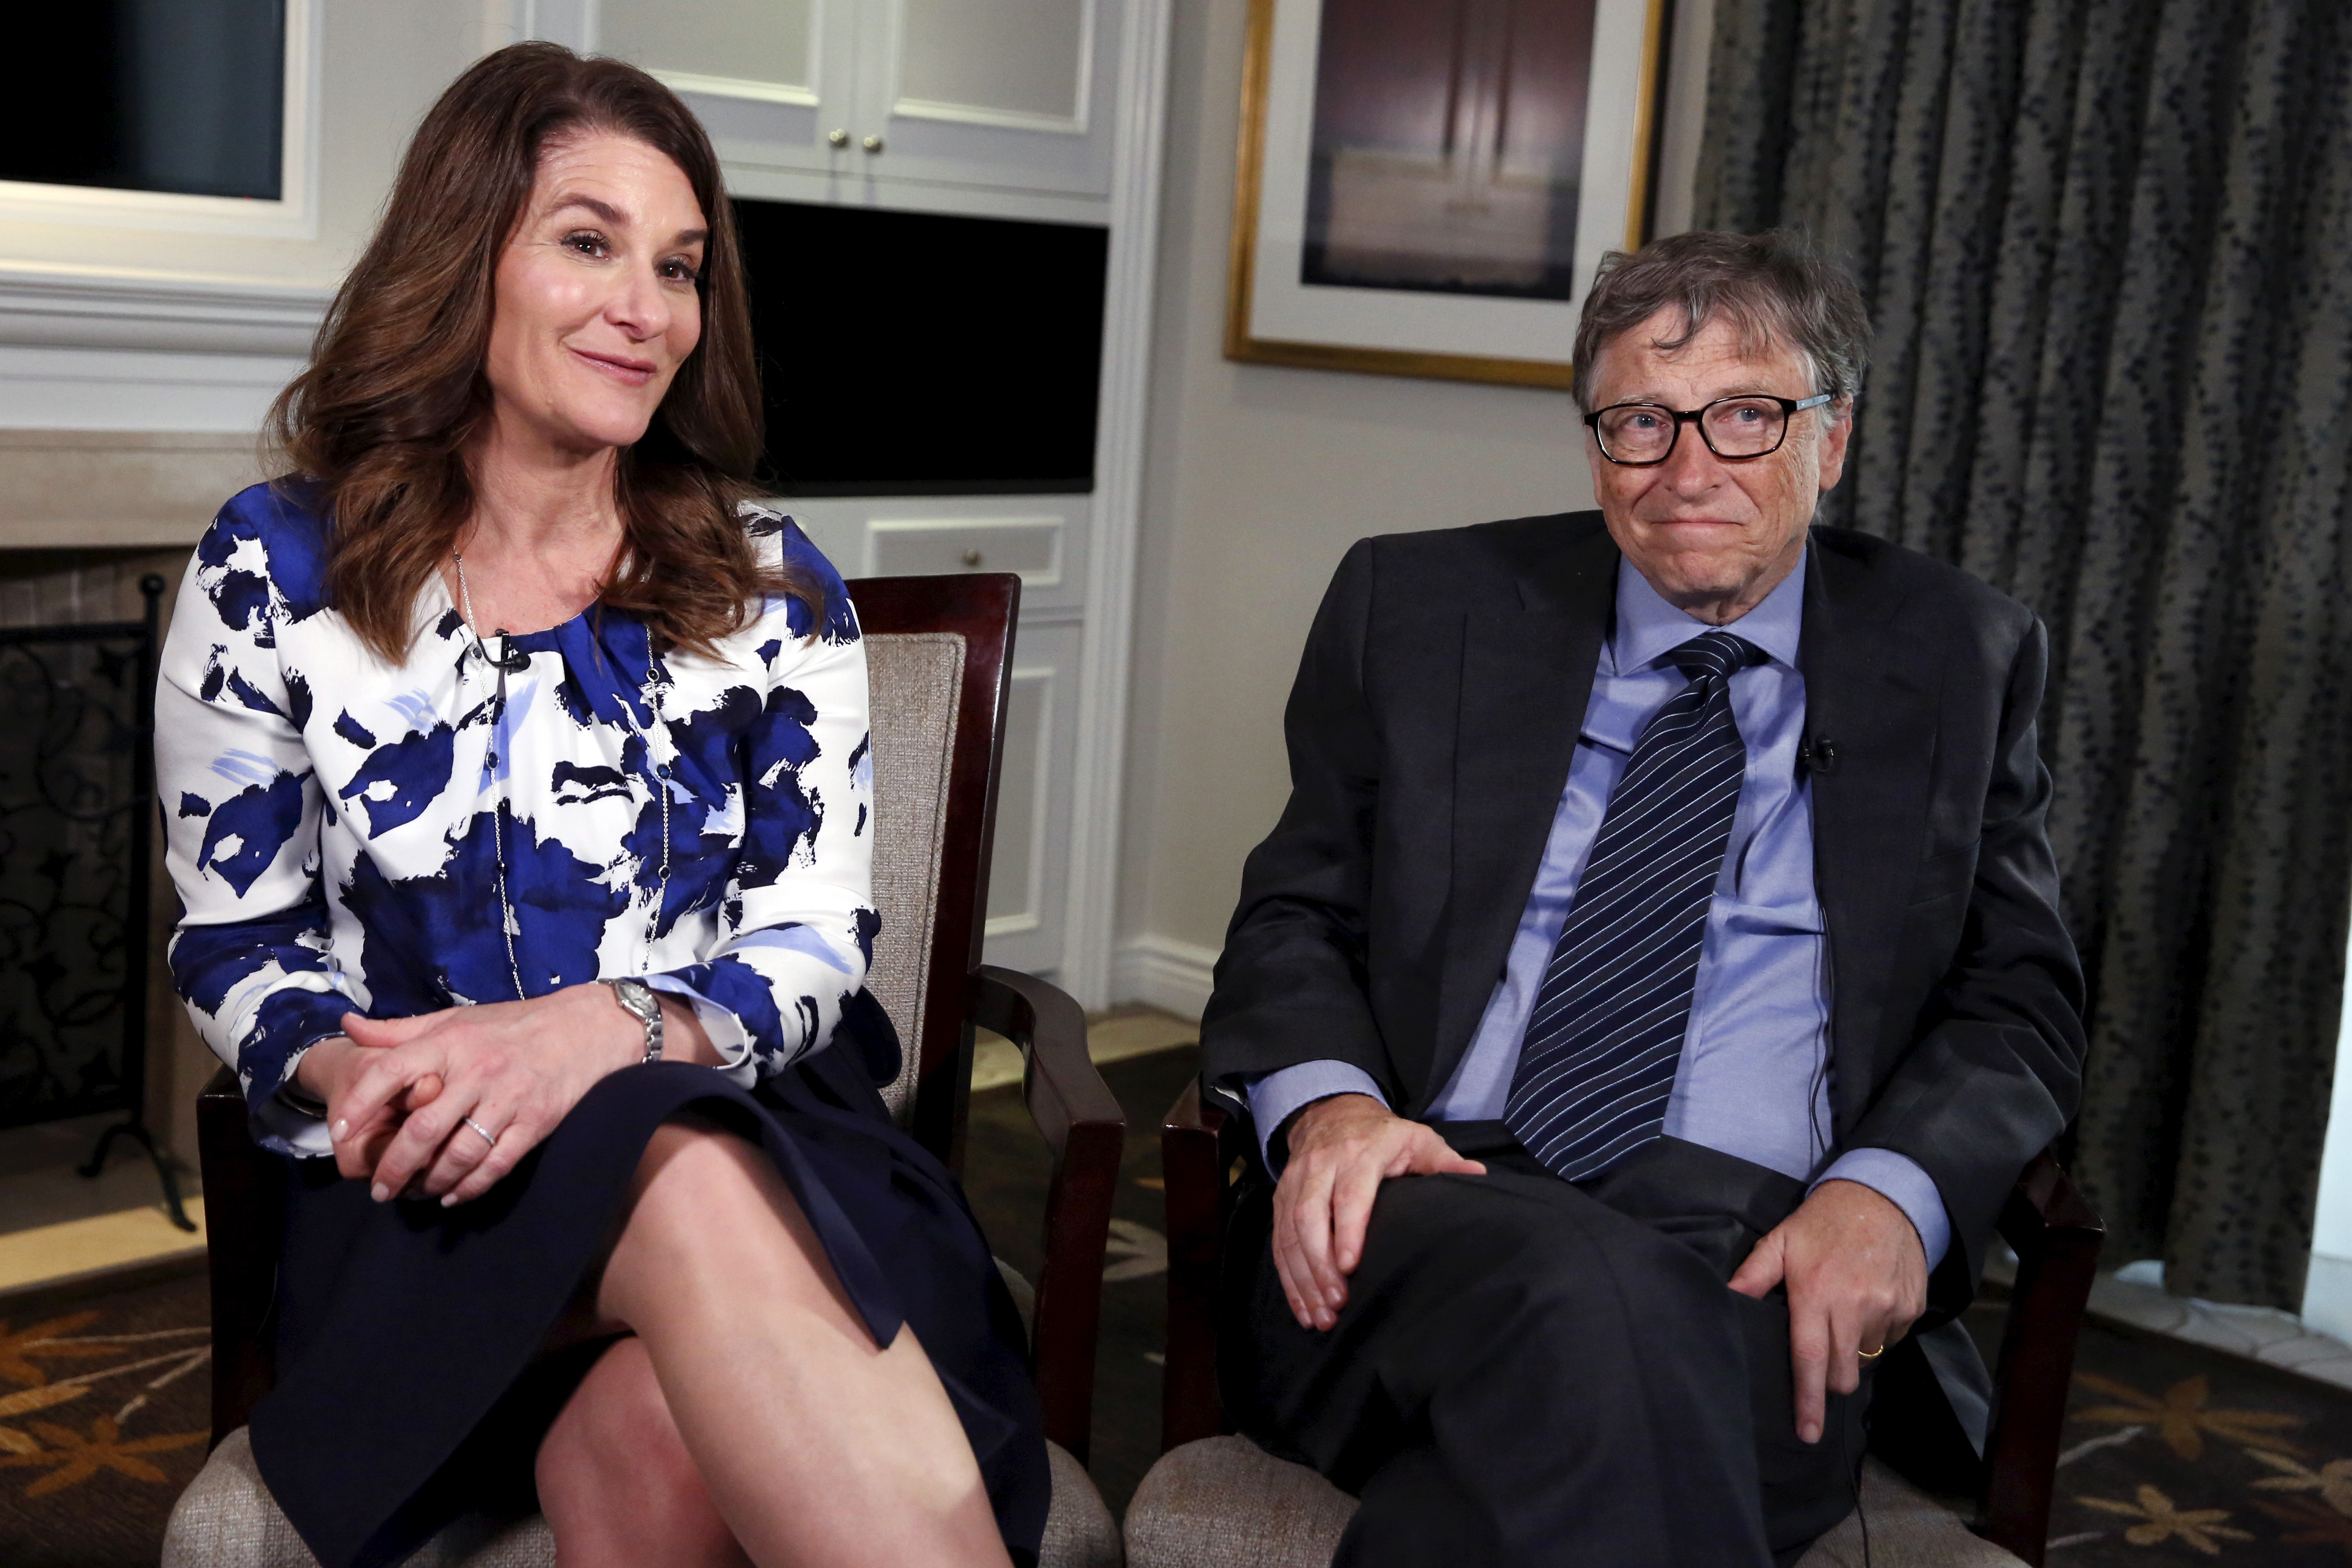 Microsoft co-founder Bill Gates and his wife Melinda sit during an interview in New York February 22, 2016.  REUTERS/Shannon Stapleton/File Photo